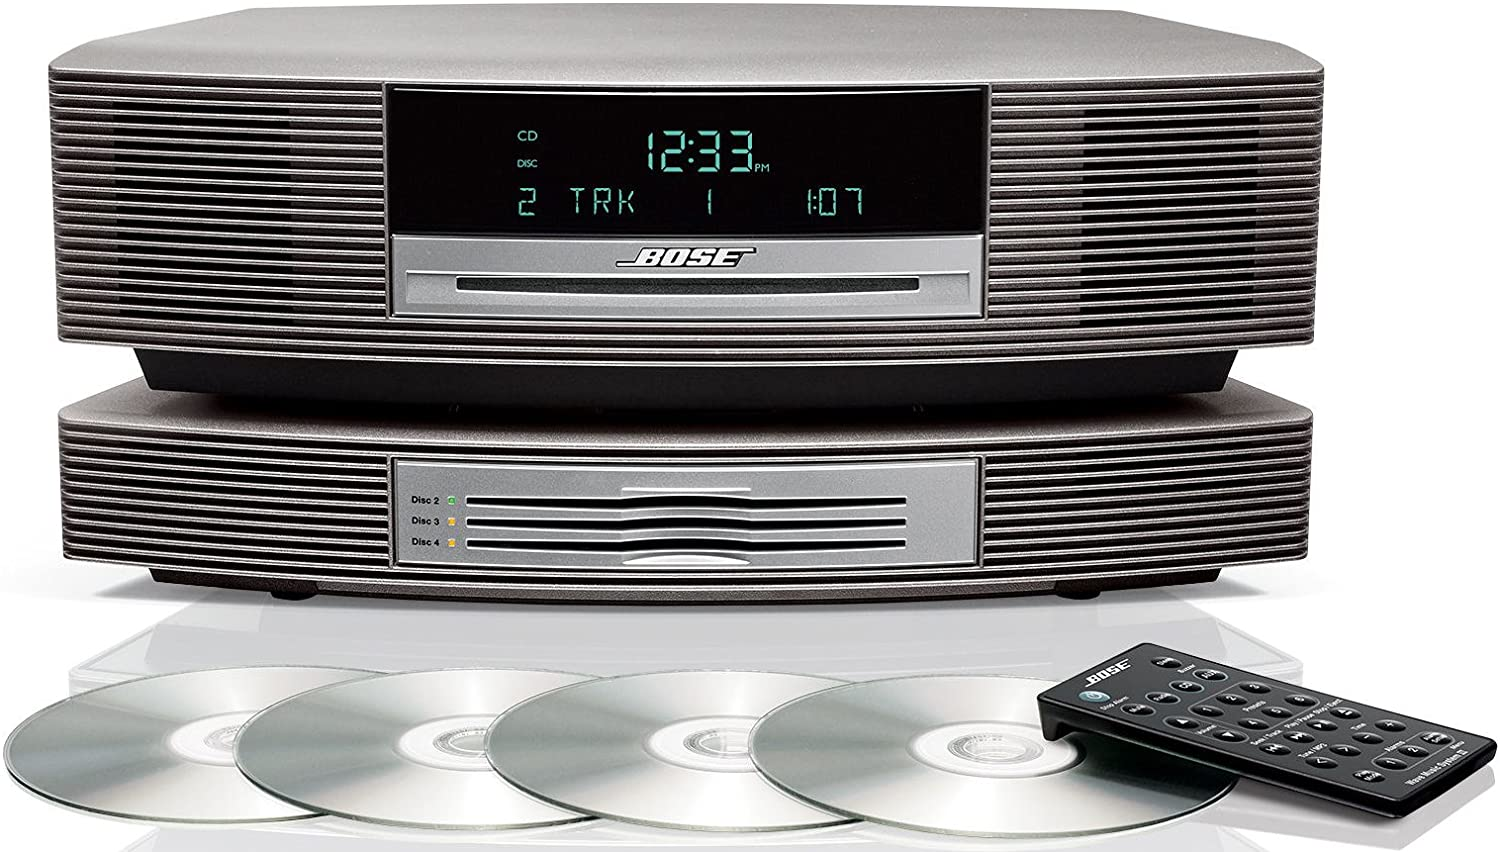 Bose Wave Music System with Multi-CD Changer - Titanium Silver